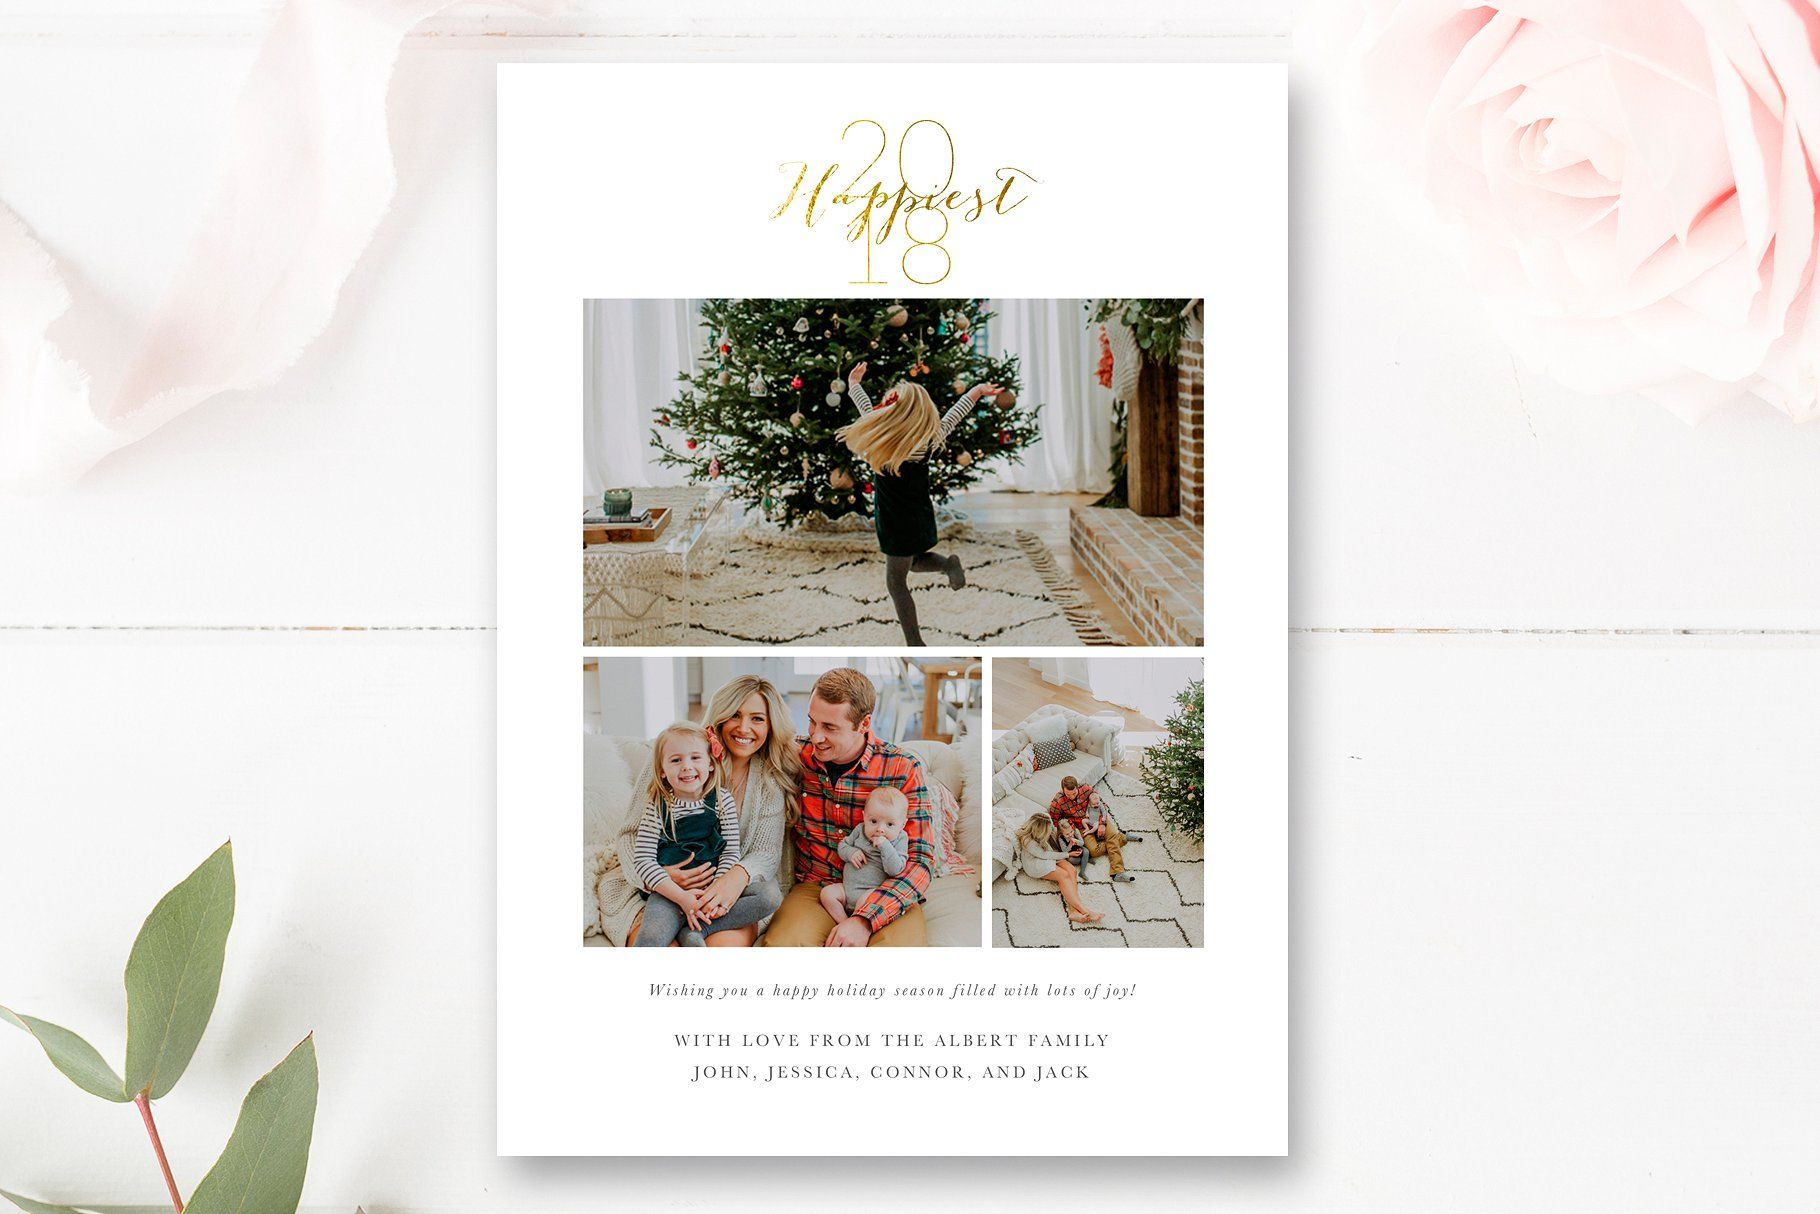 New Years Card Template Photoshop Template Design Card Template New Year Card